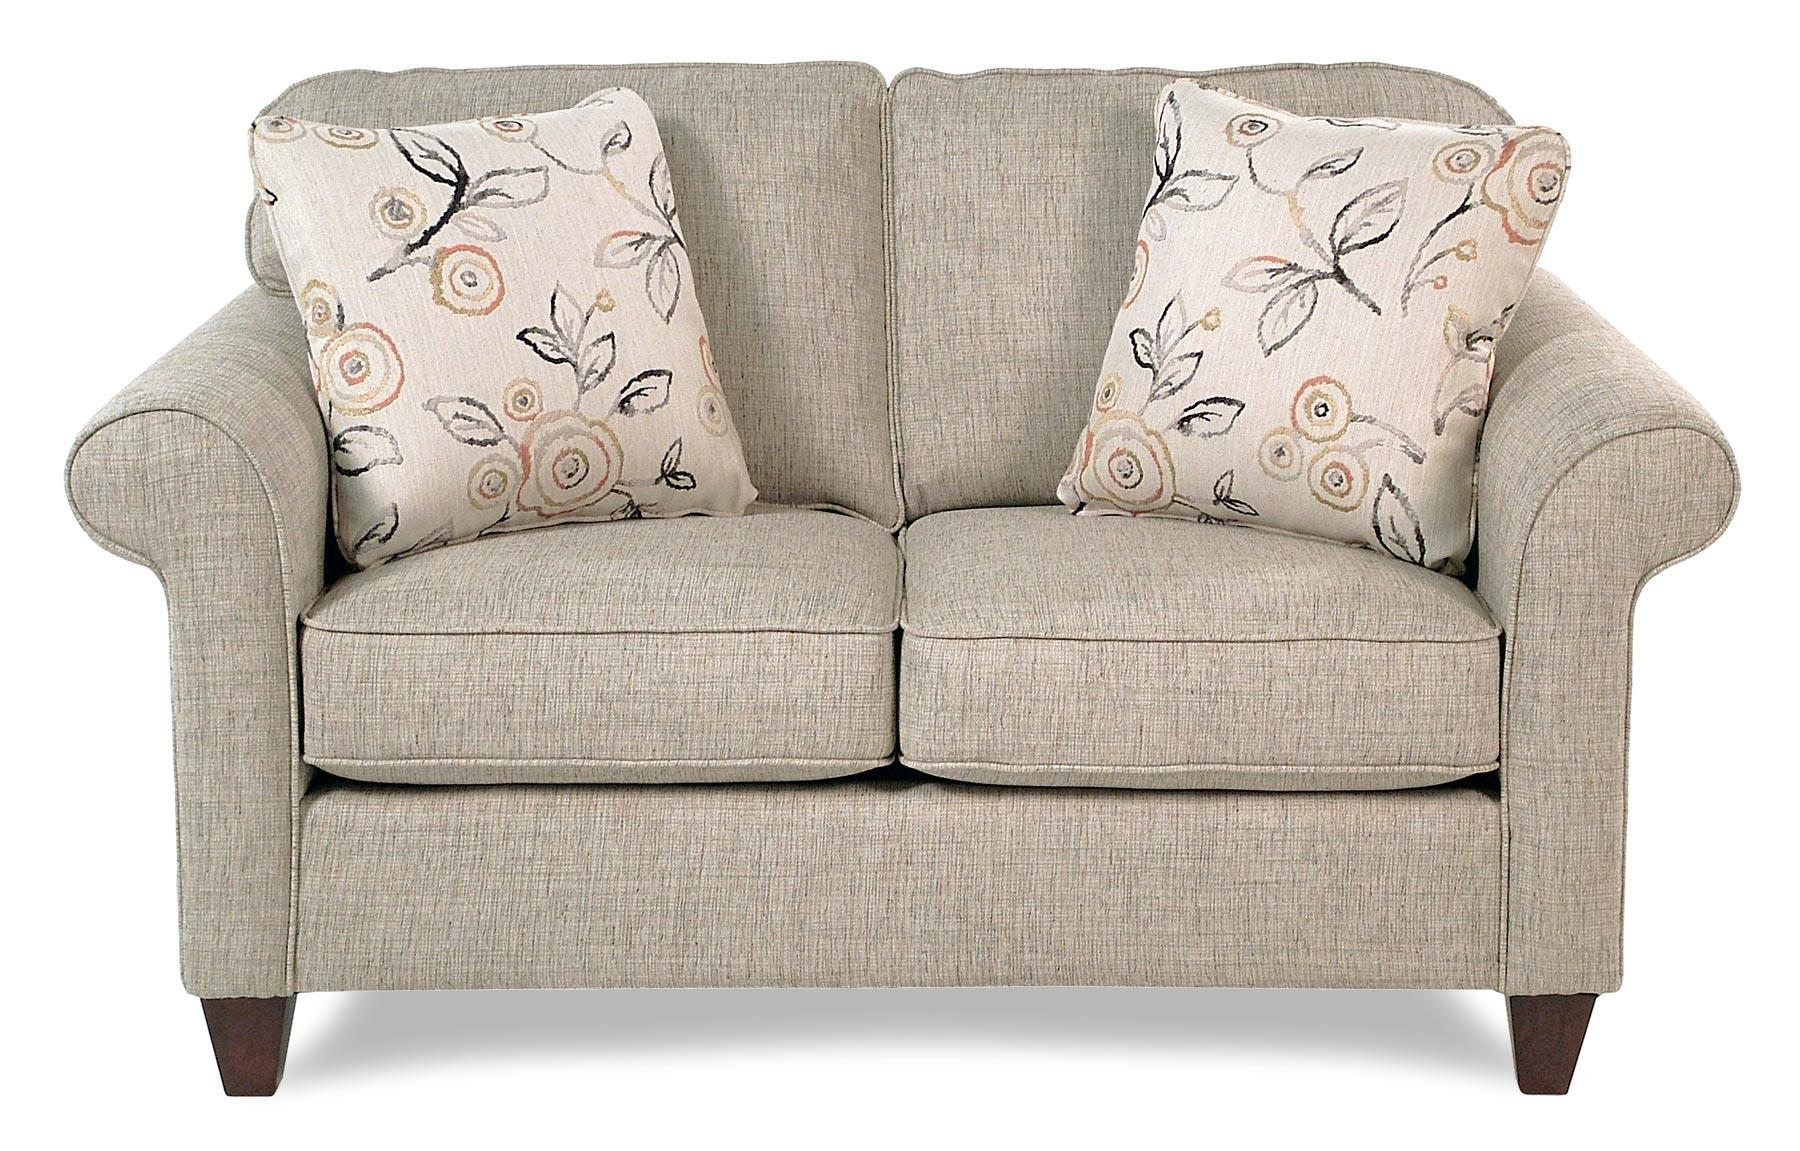 Cozy Life Jarvis Transitional Loveseat W/ Rolled Arms   Item Number:  742130 BREAKOUT10